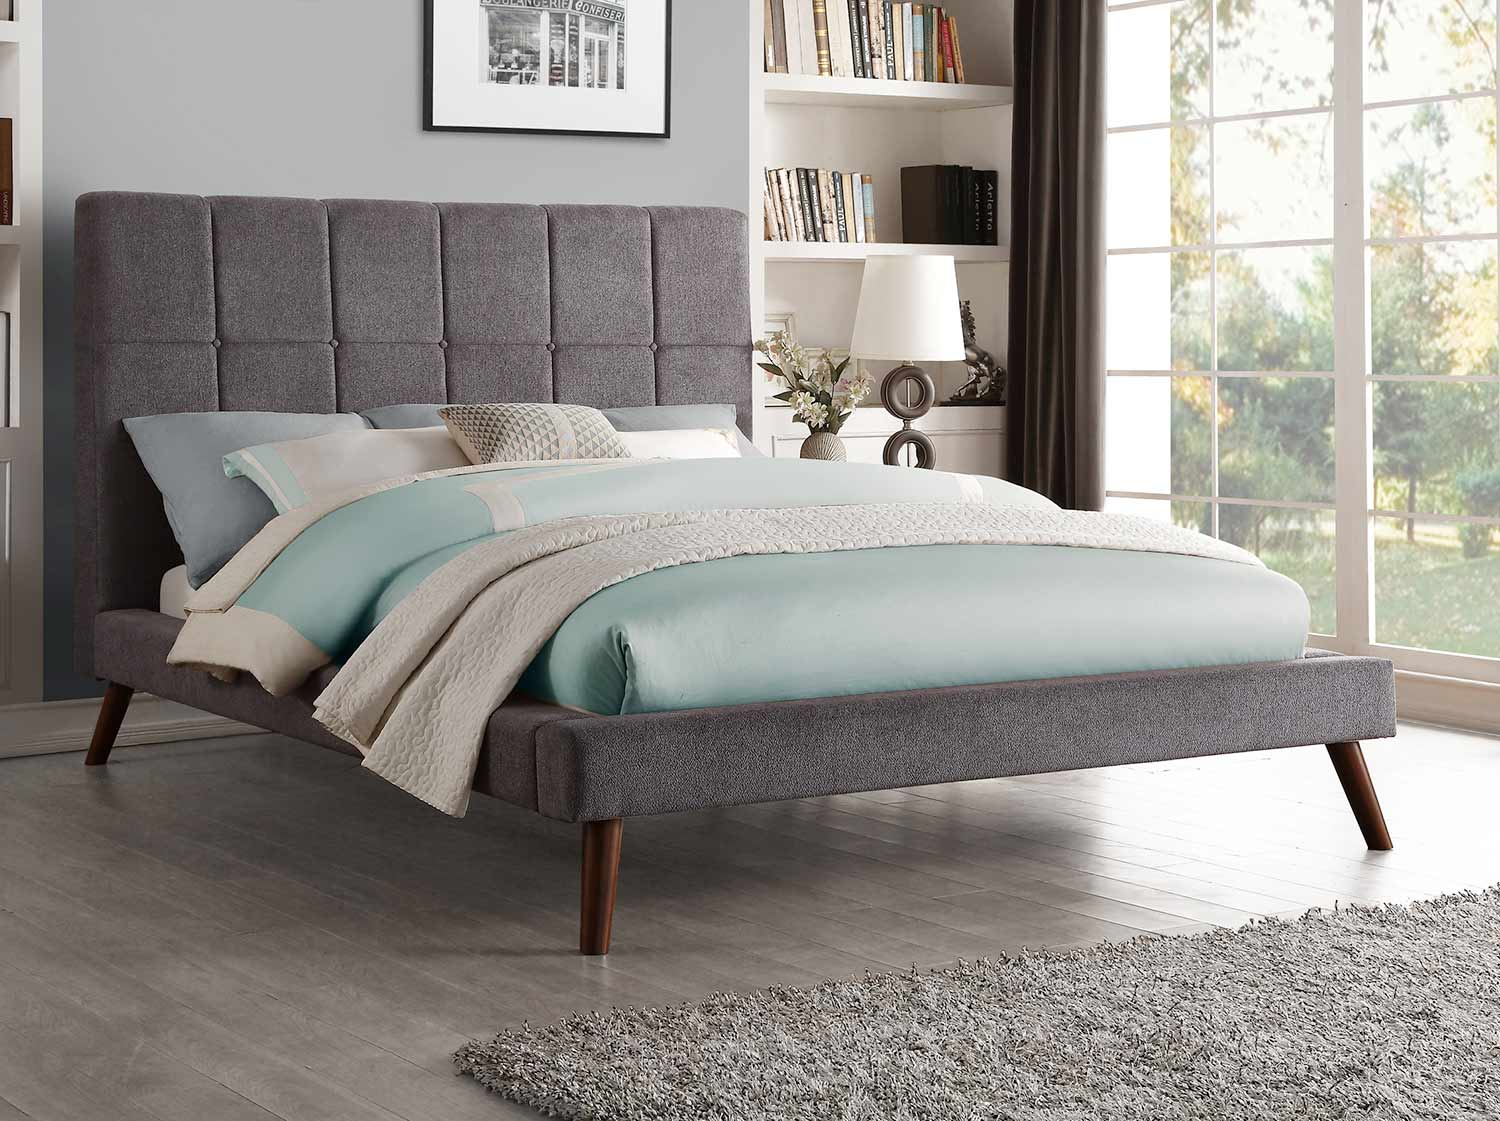 Homelegance Kinsale Upholstered Bed - Gray